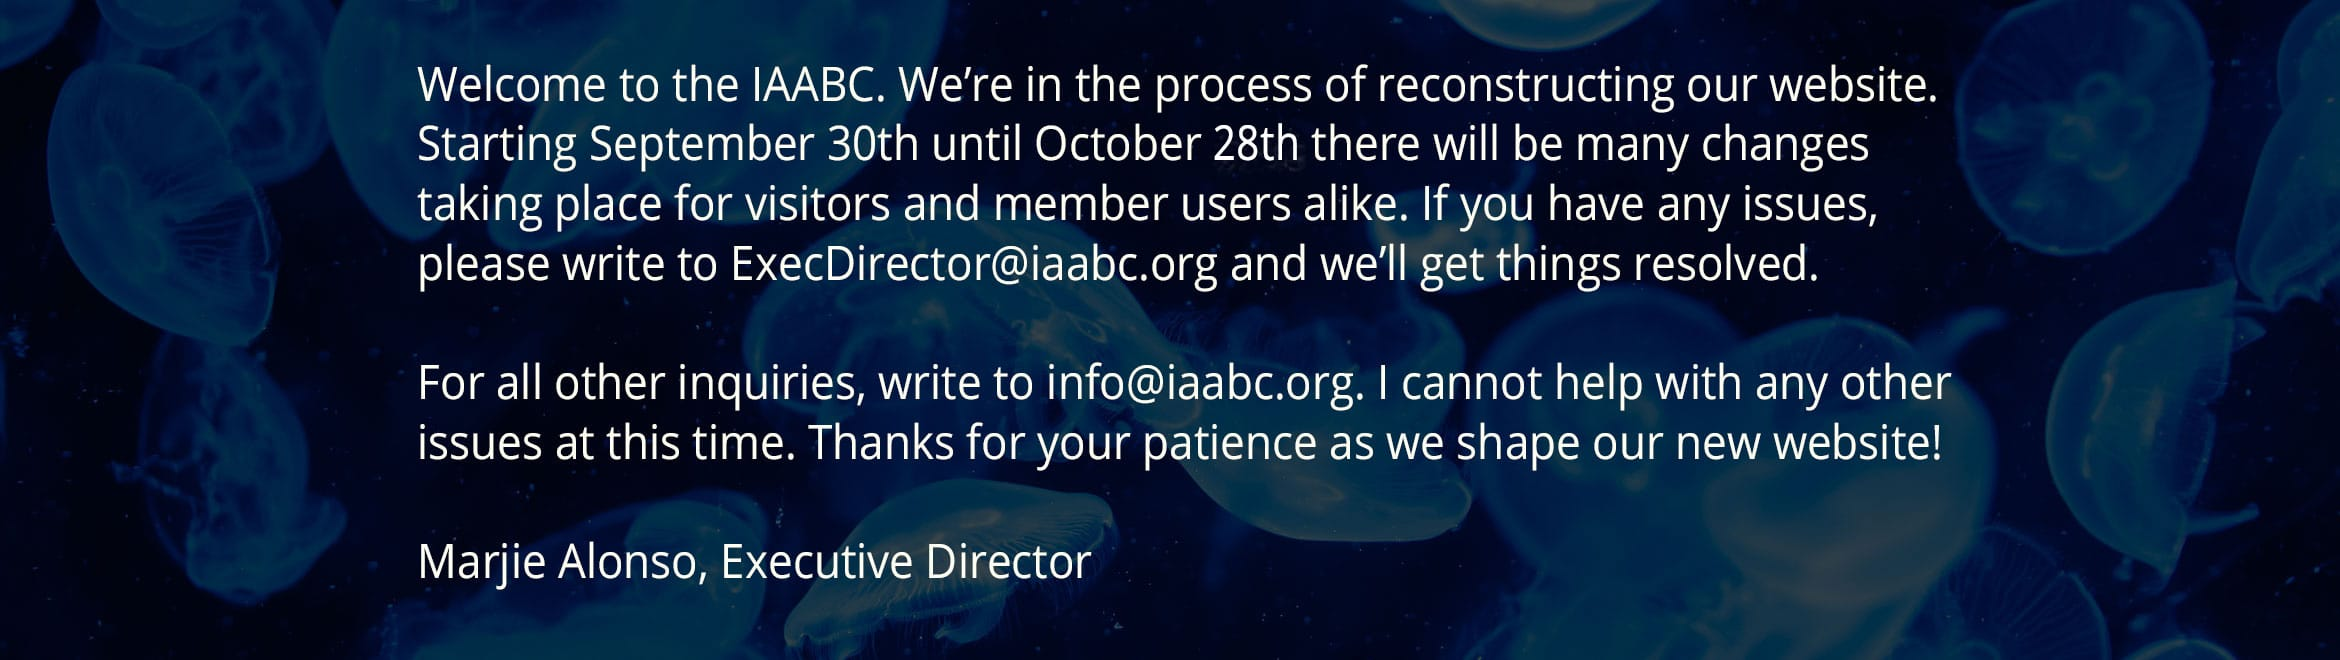 Welcome to the IAABC